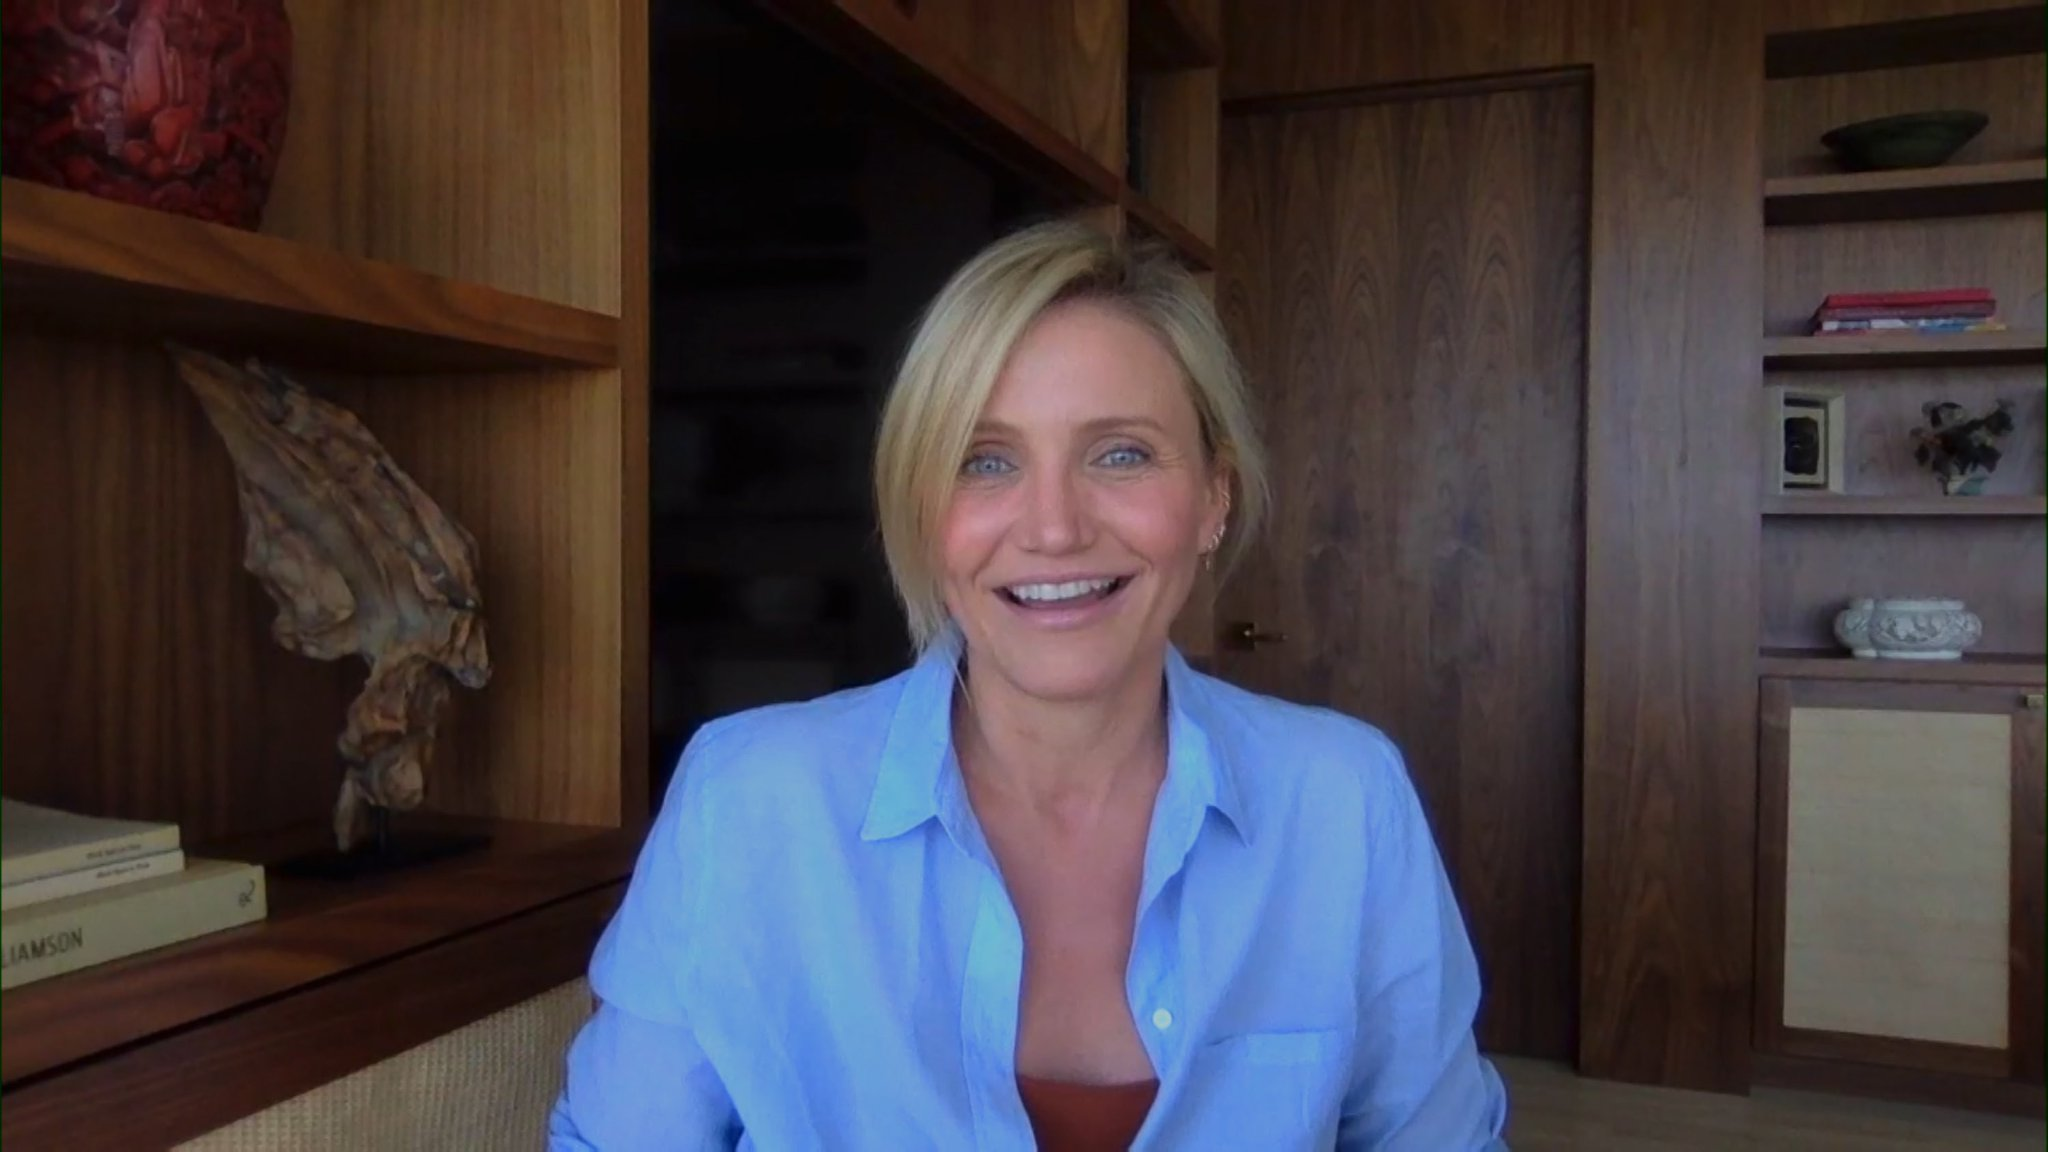 Cameron Diaz on reinventing herself: 'Intention is everything' Photo